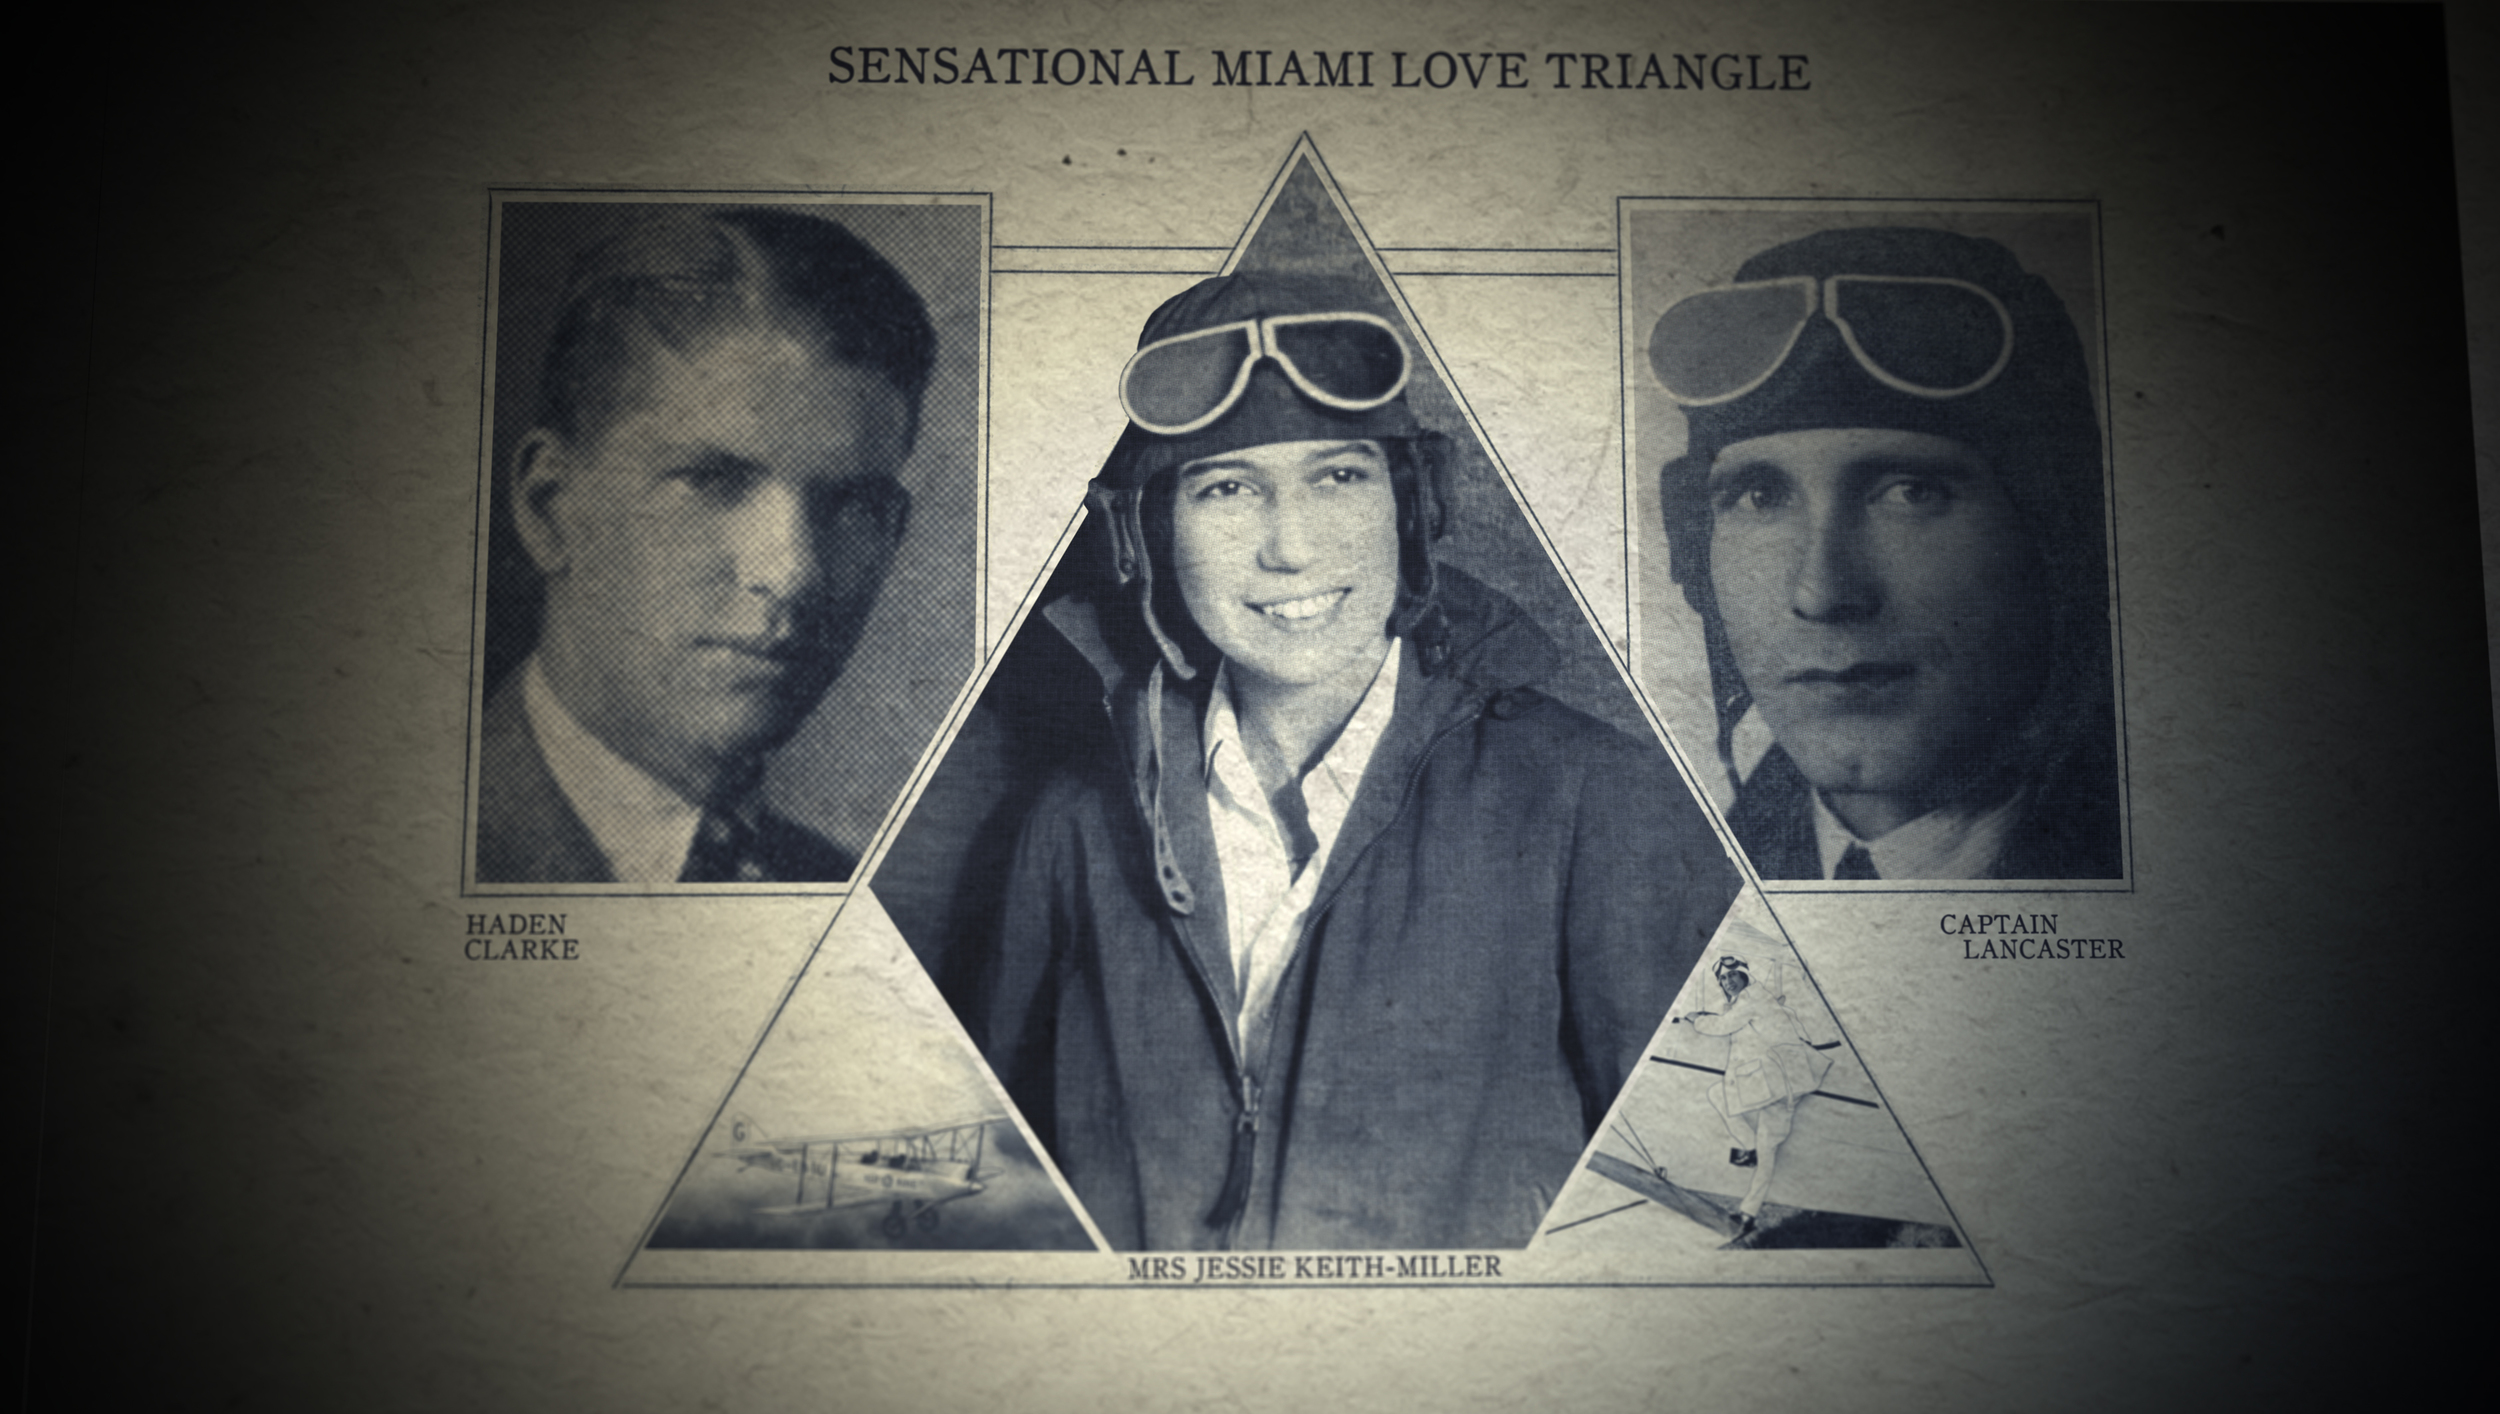 The Love Triangle Miami 1932.jpg